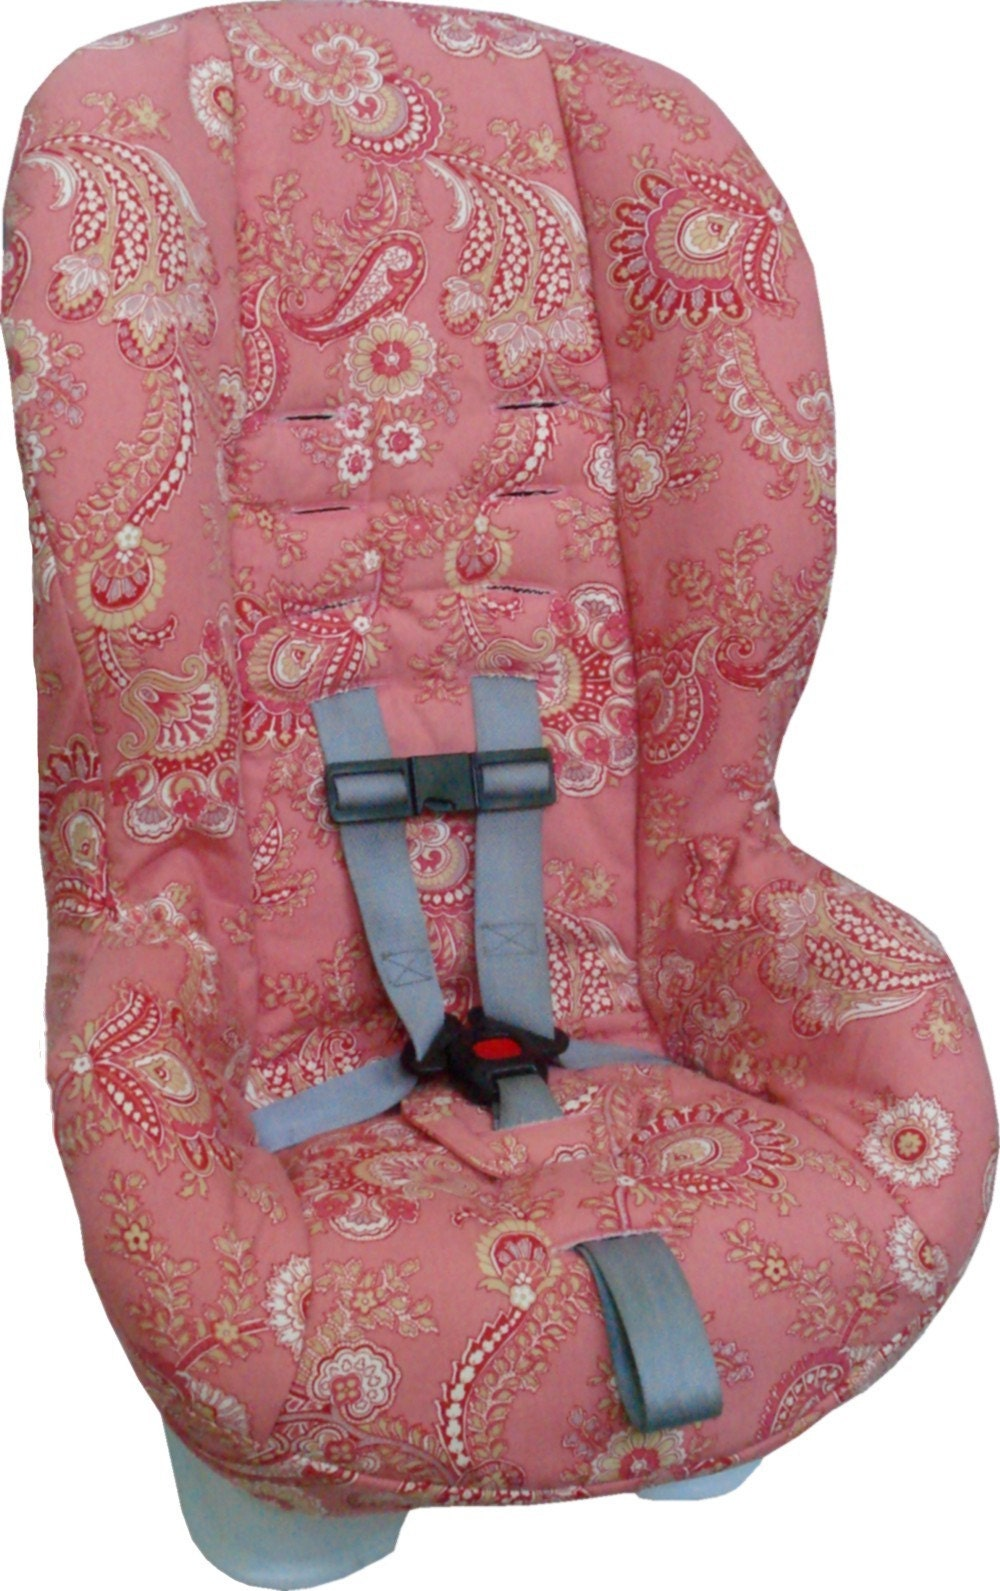 britax marathon replacement car seat cover pink paisley. Black Bedroom Furniture Sets. Home Design Ideas